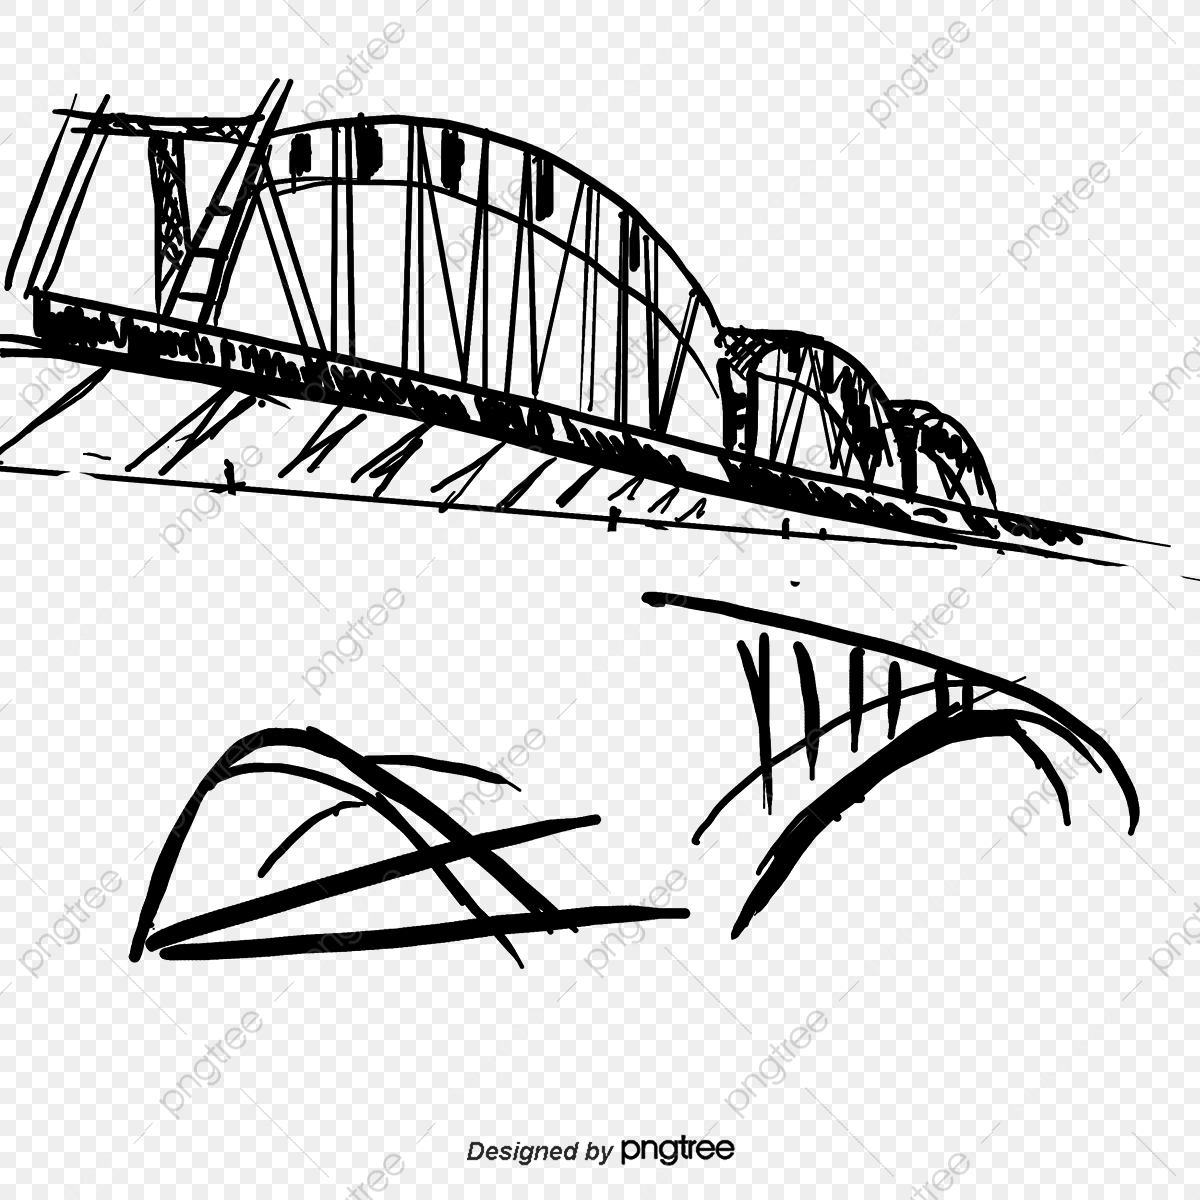 vector can edit black and white yangtze river bridge vector editable black and white png transparent clipart image and psd file for free download https pngtree com freepng vector can edit black and white yangtze river bridge 3014038 html